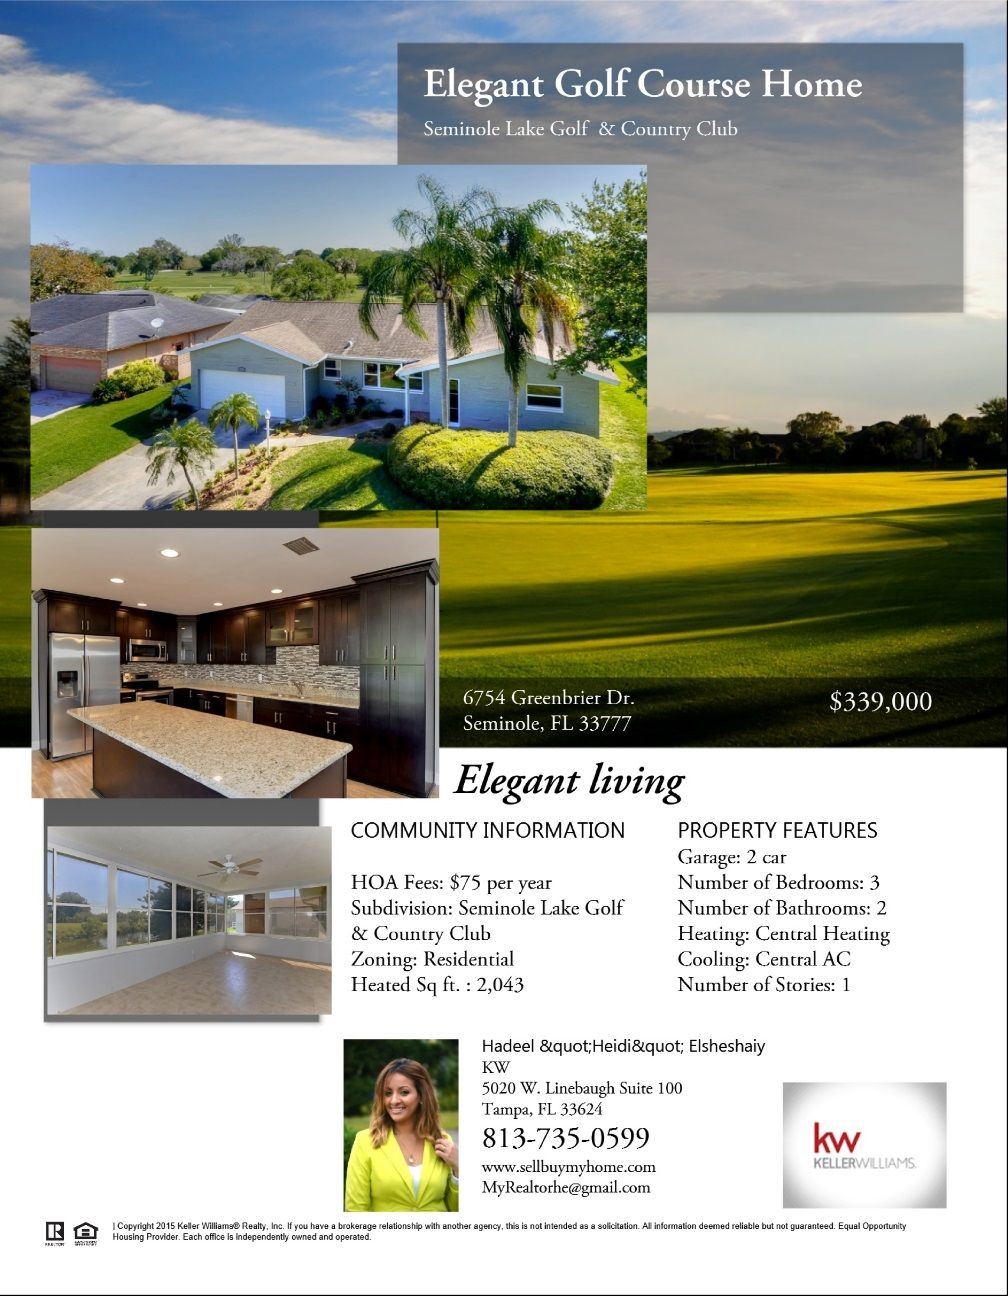 Beautiful Golf Course Home; homes, design, Real Estate, buyer, Florida